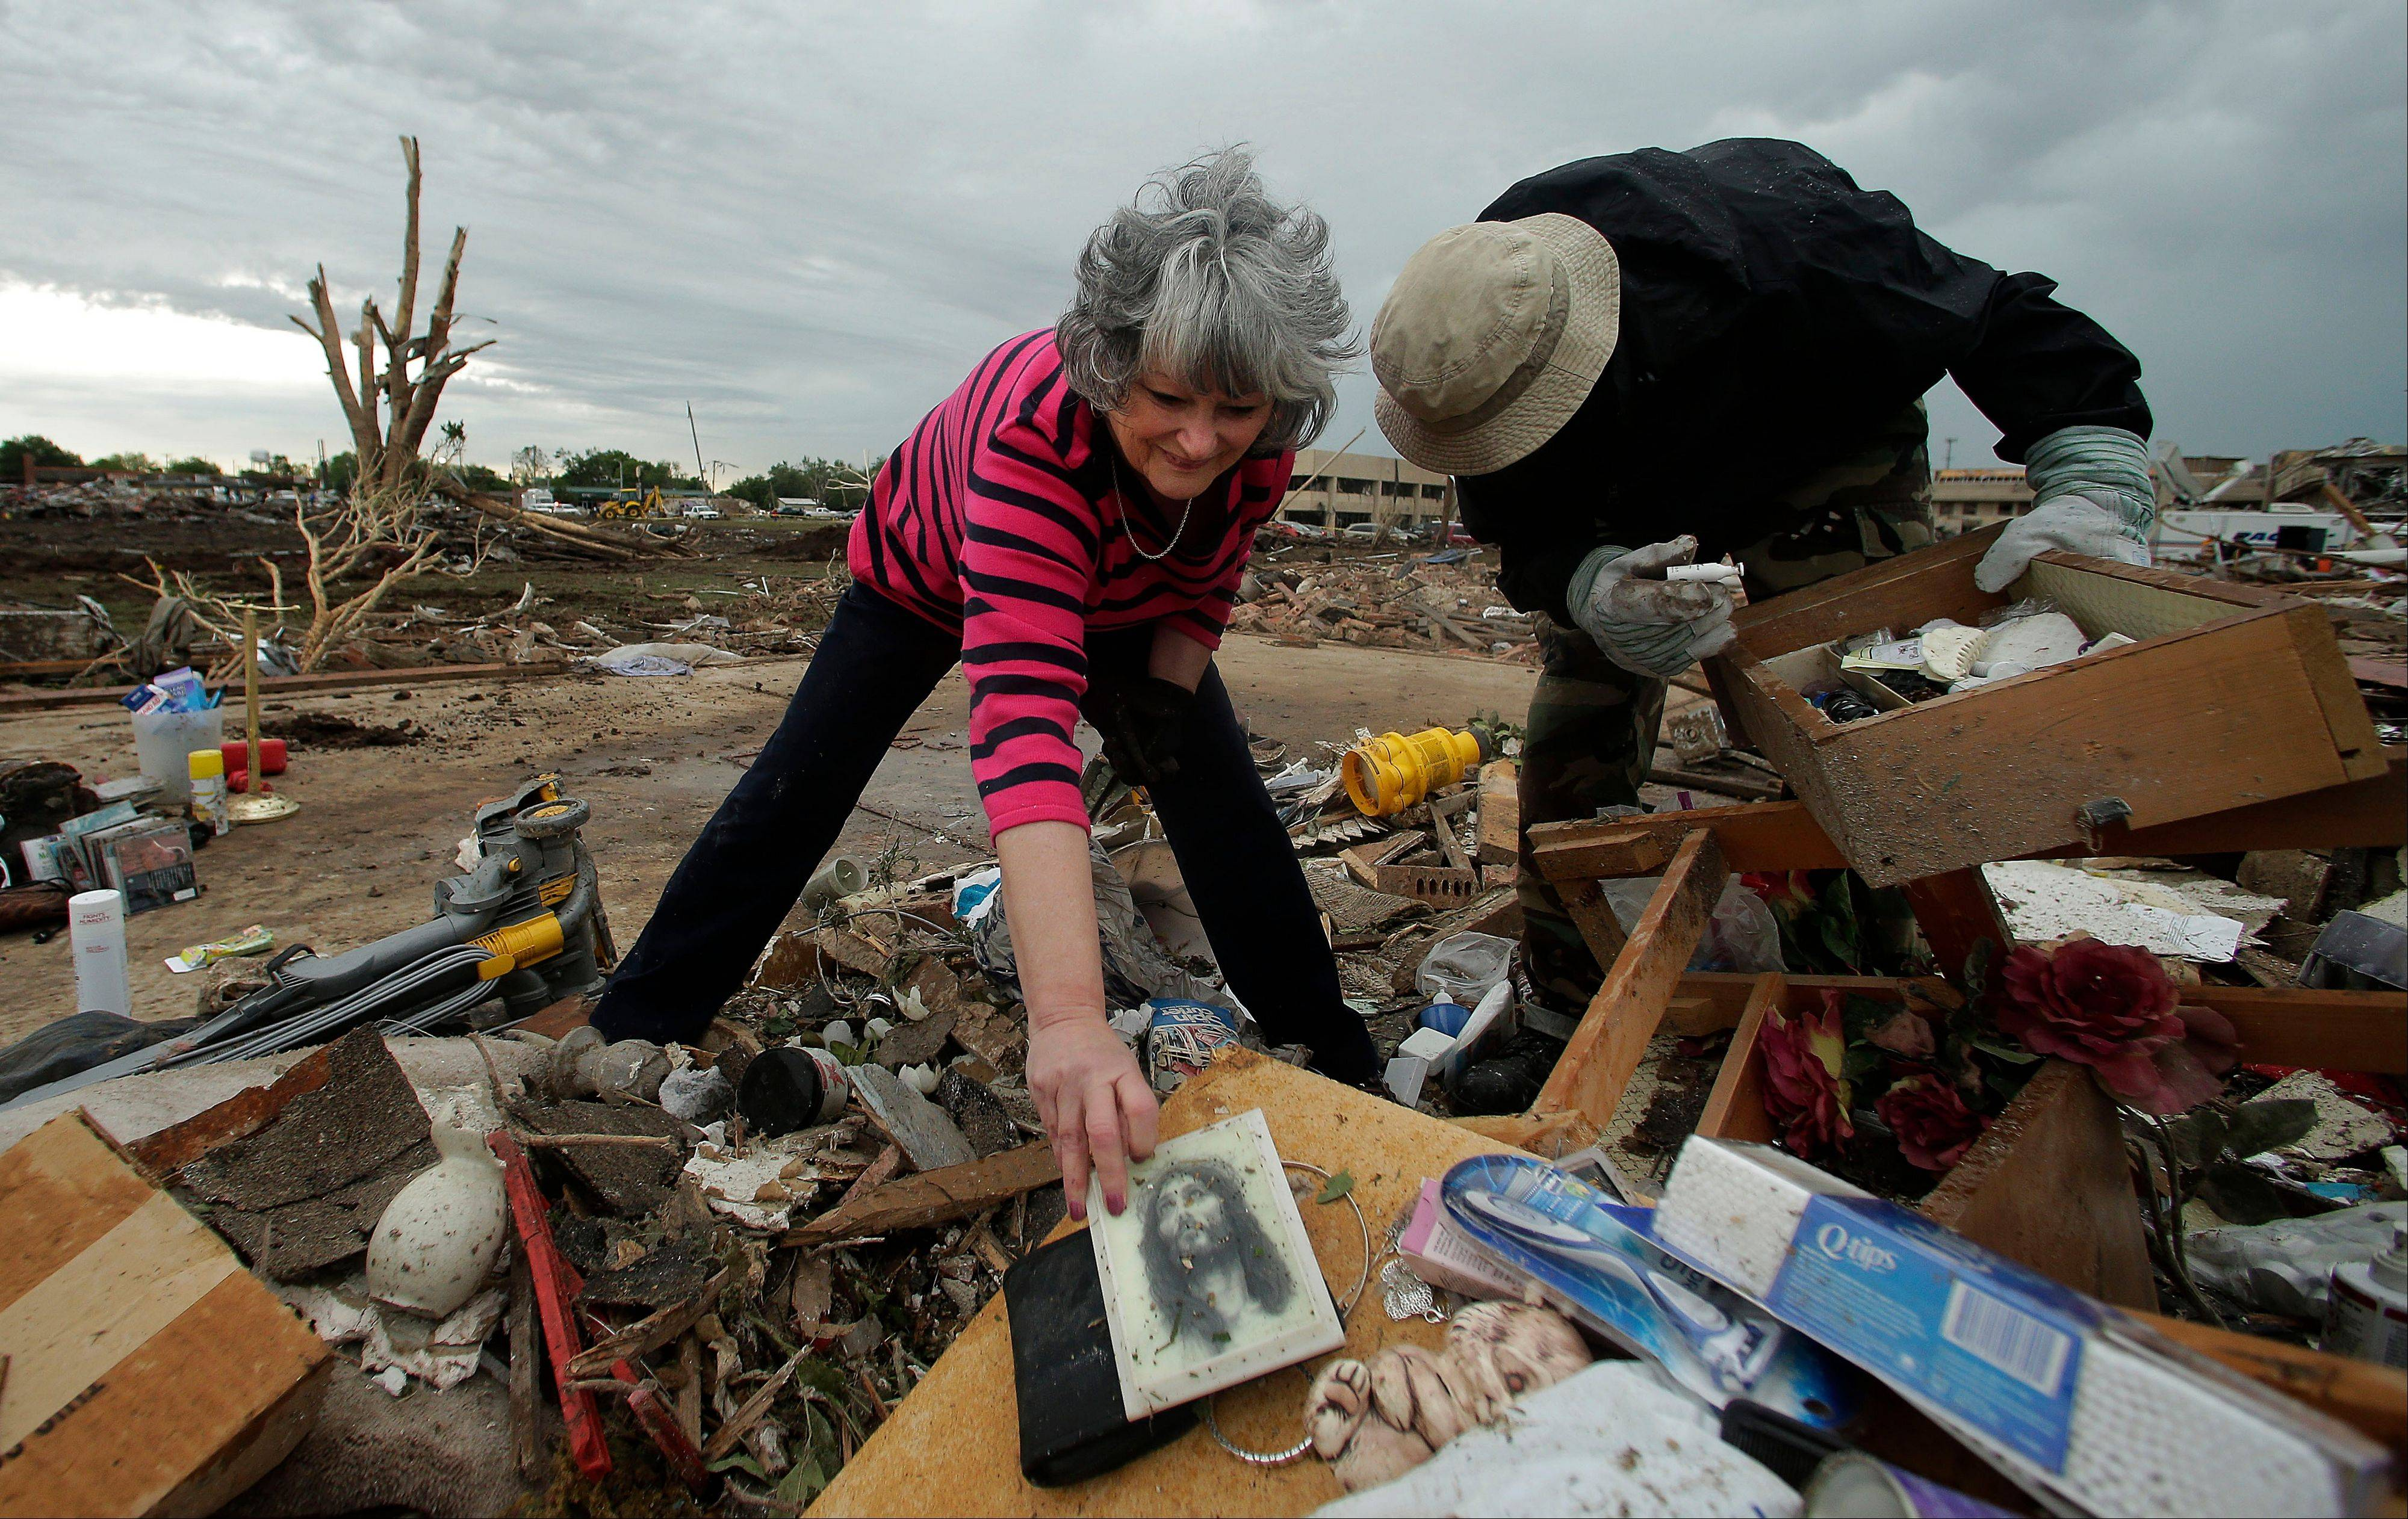 Lea Bessinger salvages a picture of Jesus as she and her son Josh Bessinger sort through the rubble of the elder Bessinger's tornado-ravaged home Tuesday, May 21, 2013, in Moore, Okla. A huge tornado roared through the Oklahoma City suburb Monday, flattening an entire neighborhoods and destroying an elementary school with a direct blow as children and teachers huddled against winds.